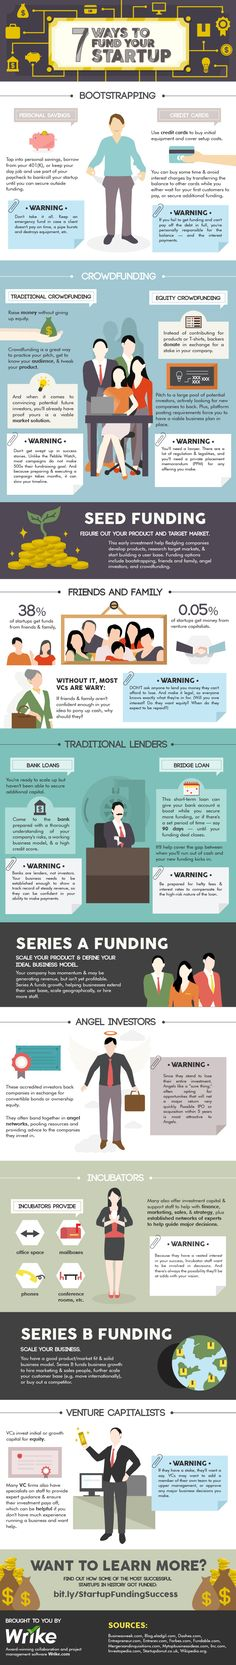 7 Ways To Fund Your Startup #infographic